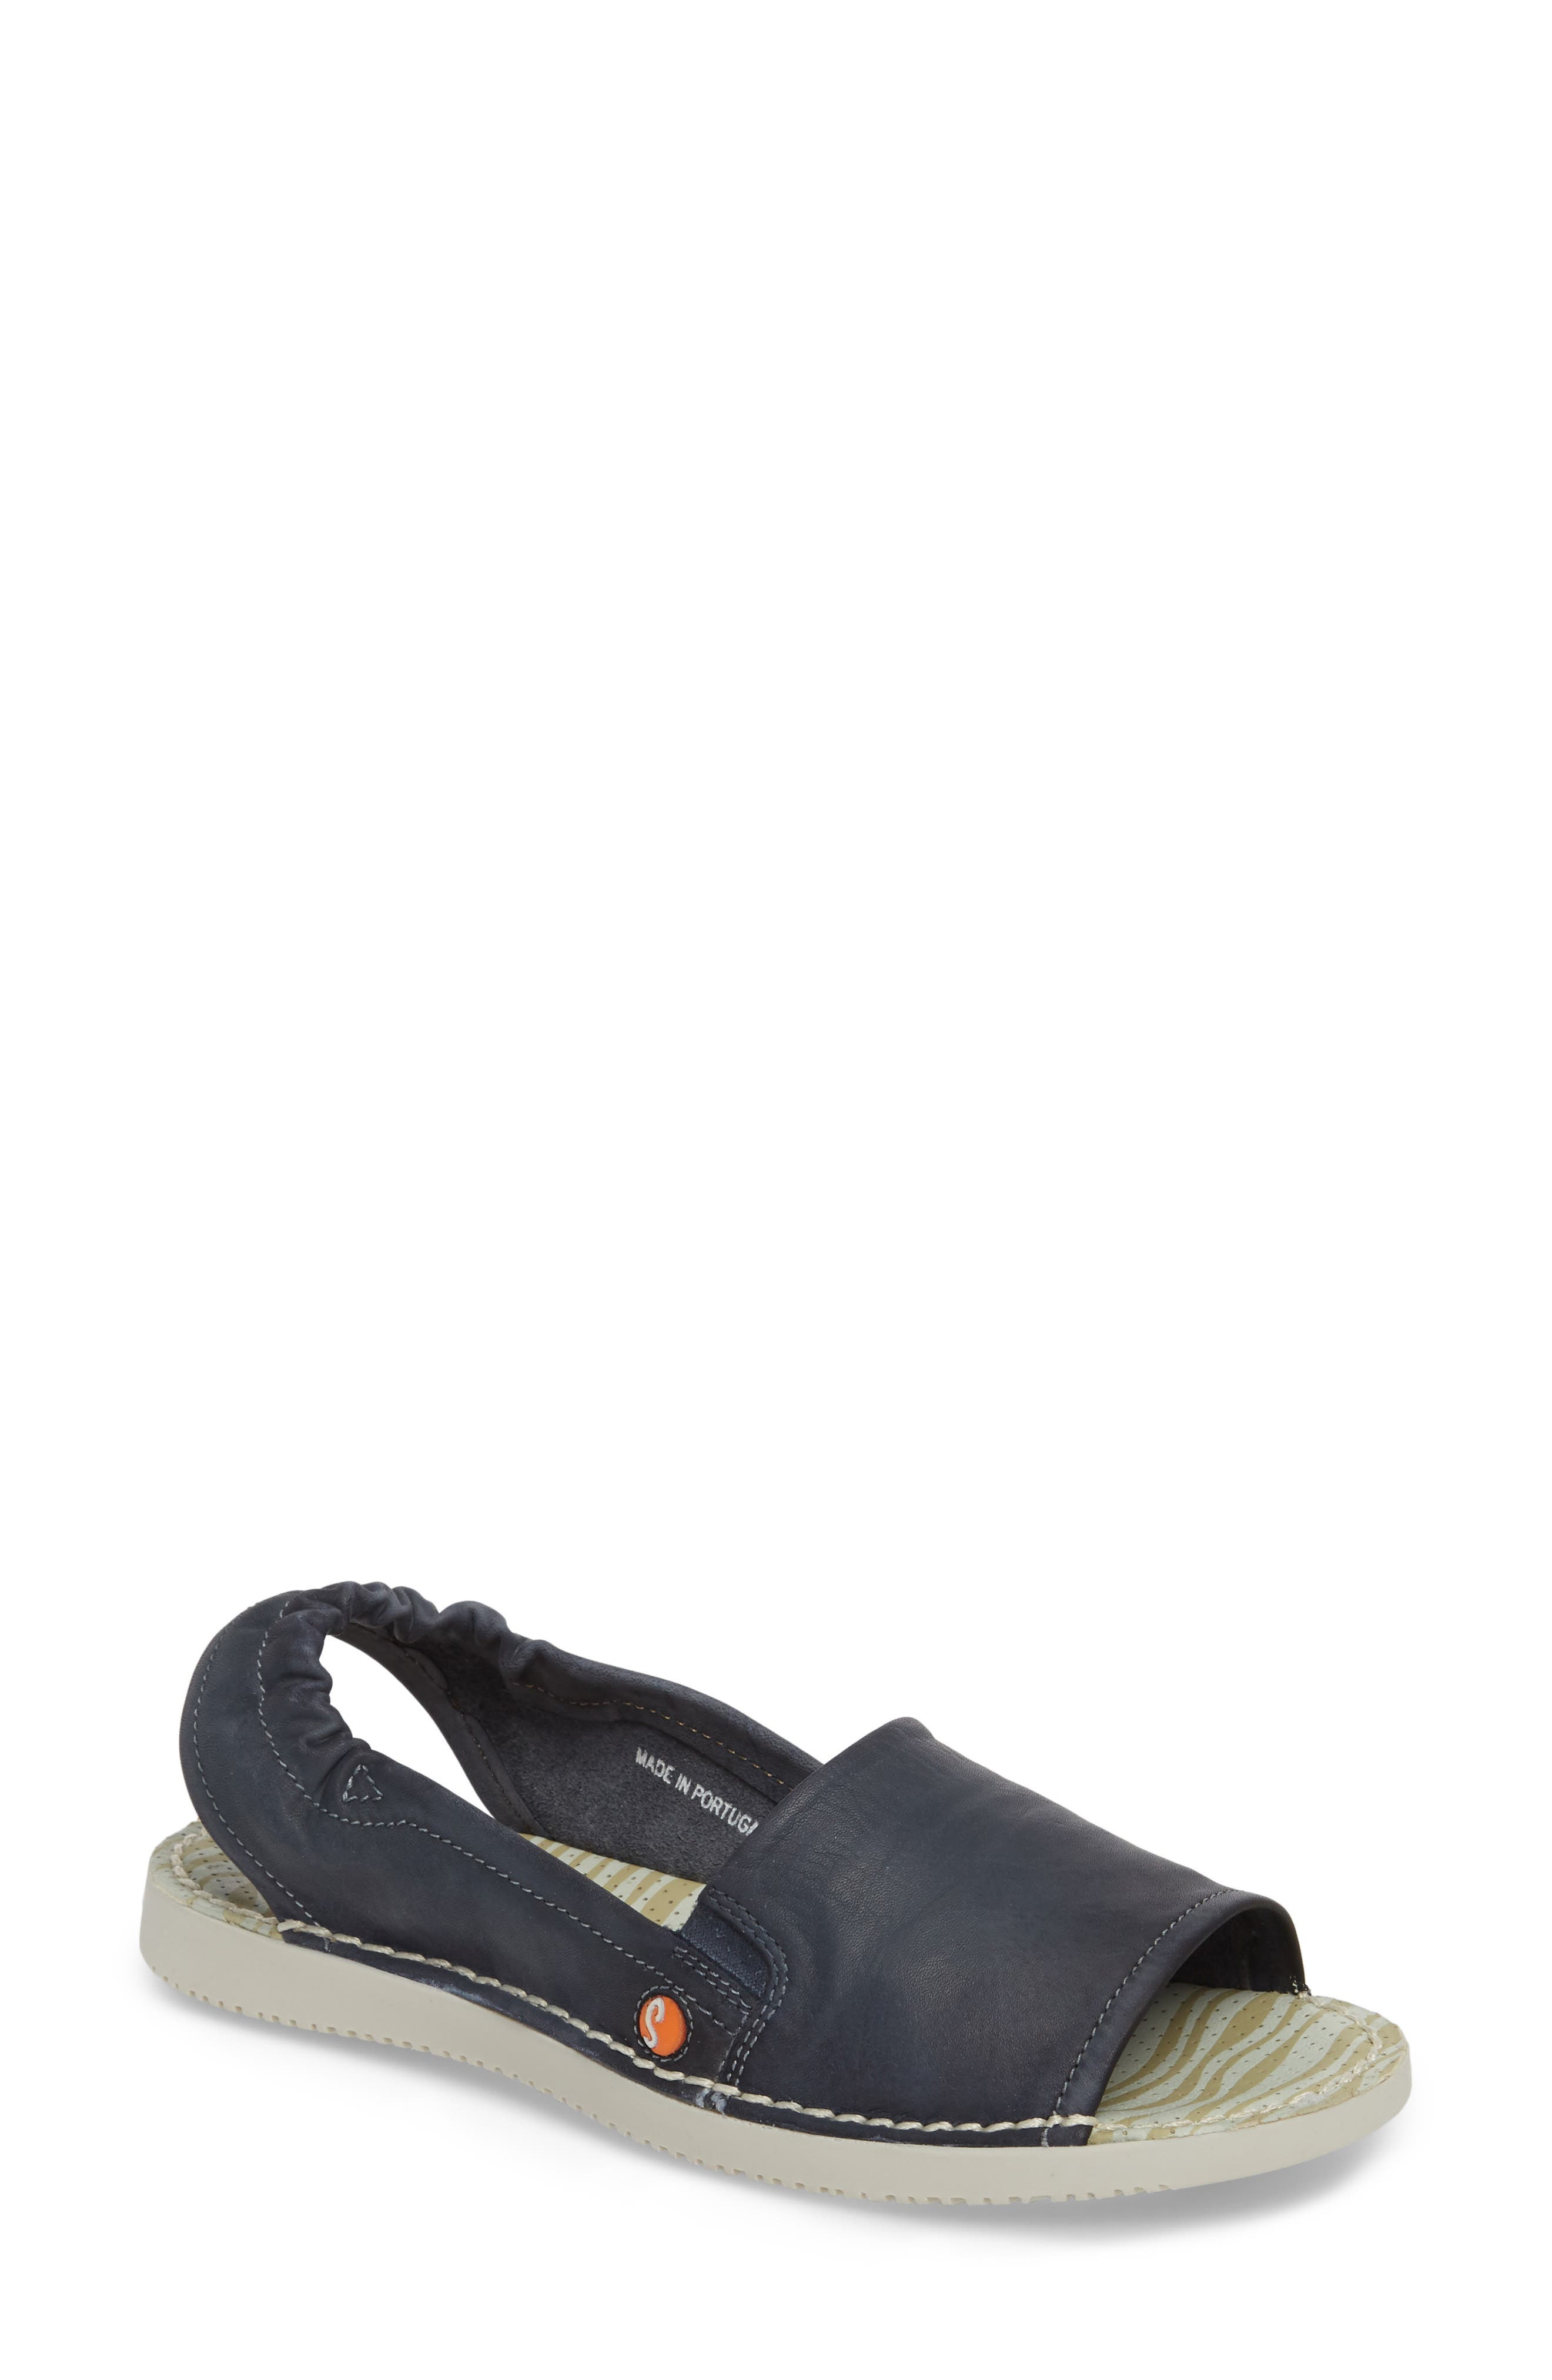 Softinos by Fly London Tee Flat Sandal (Women)